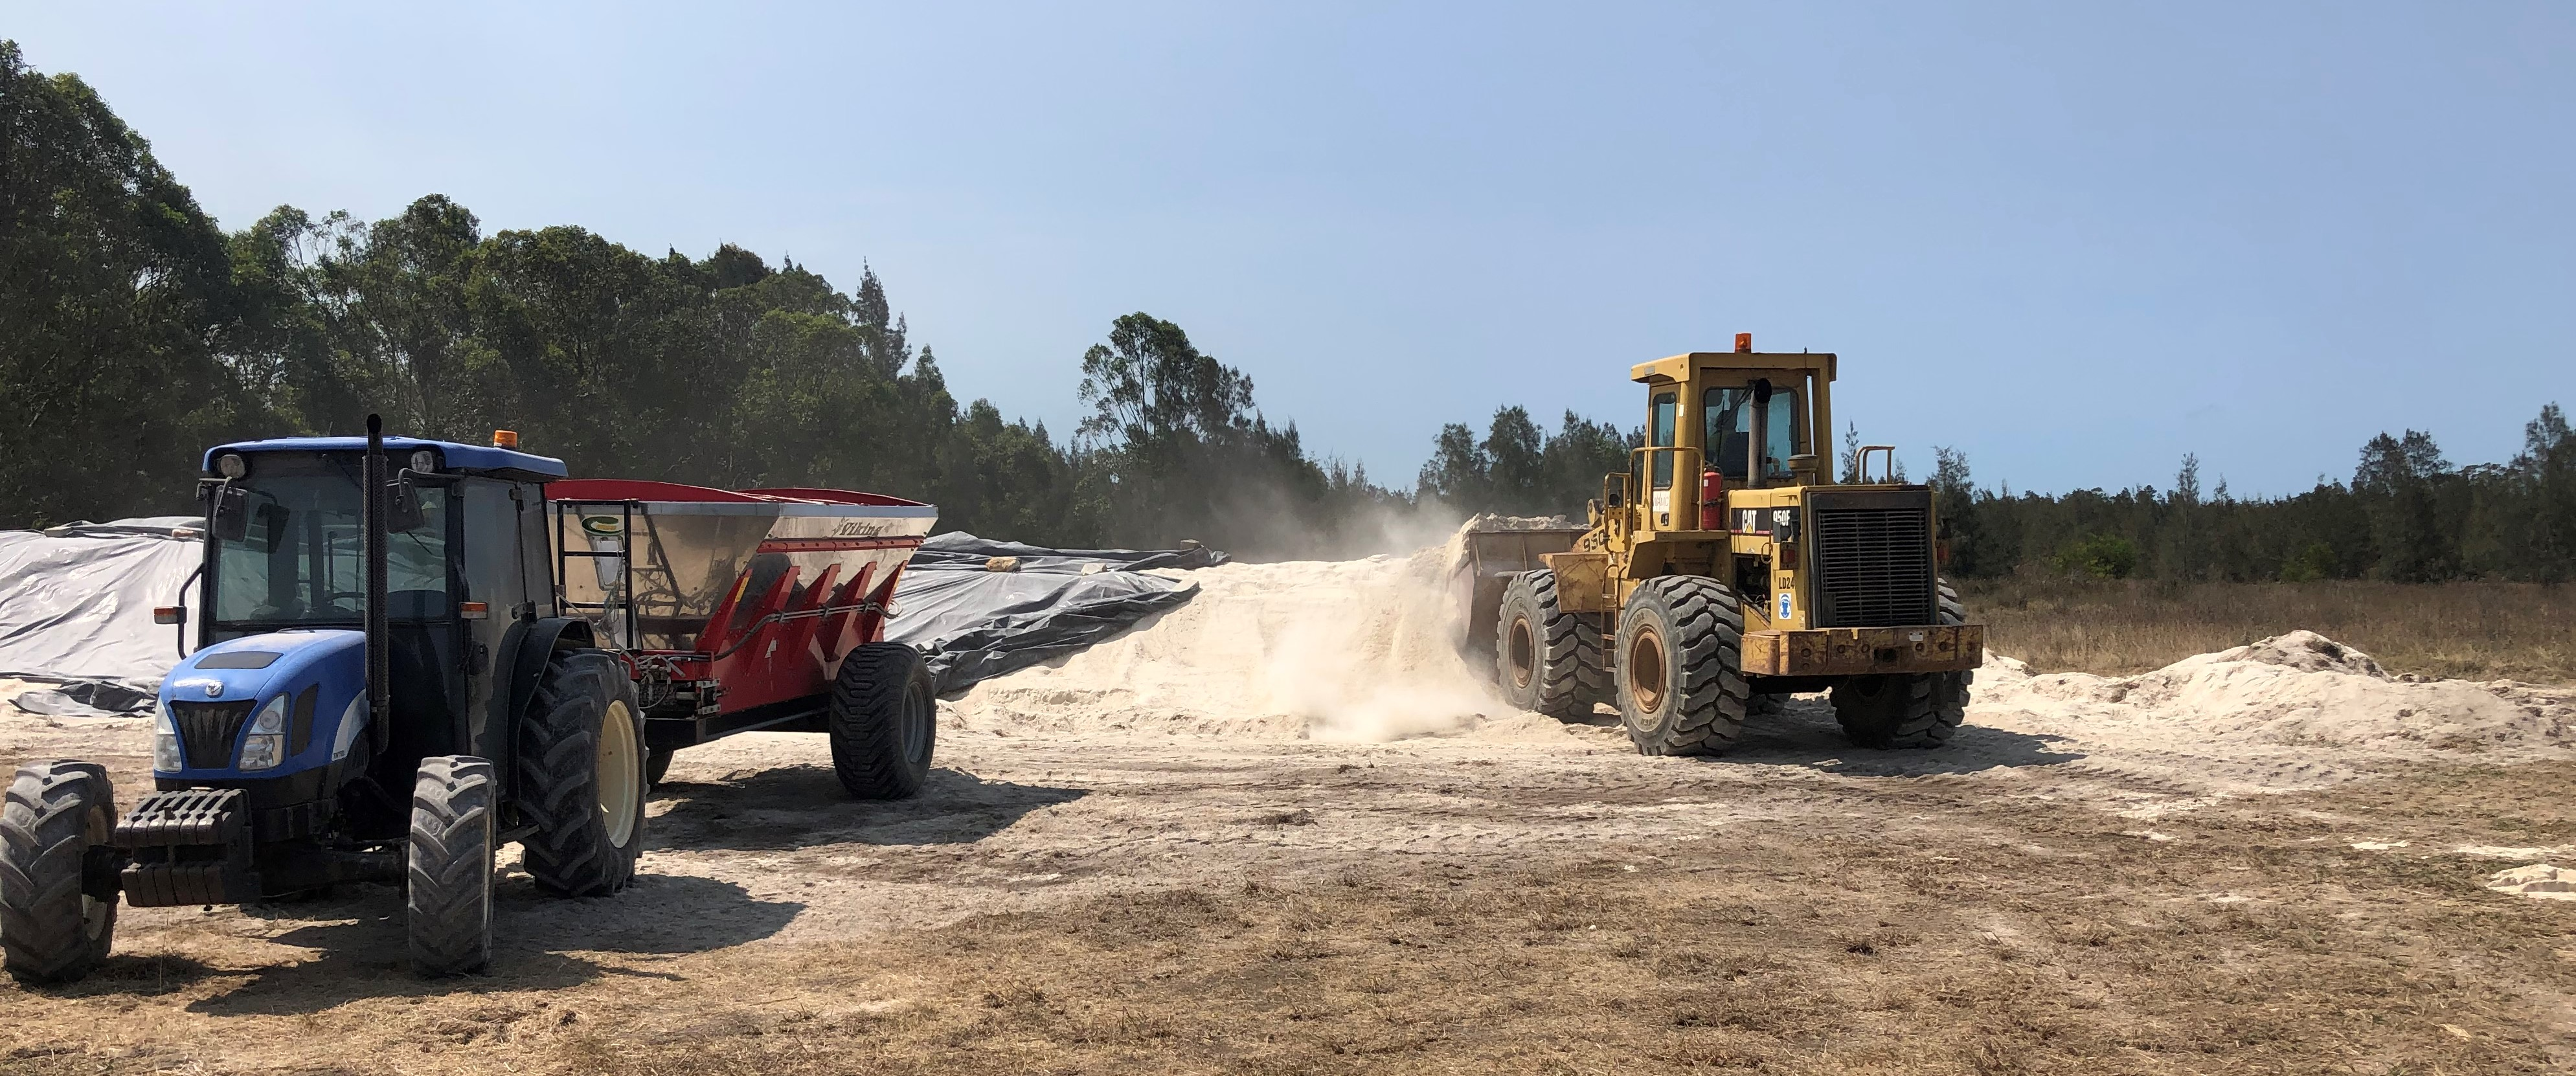 Dora creek image